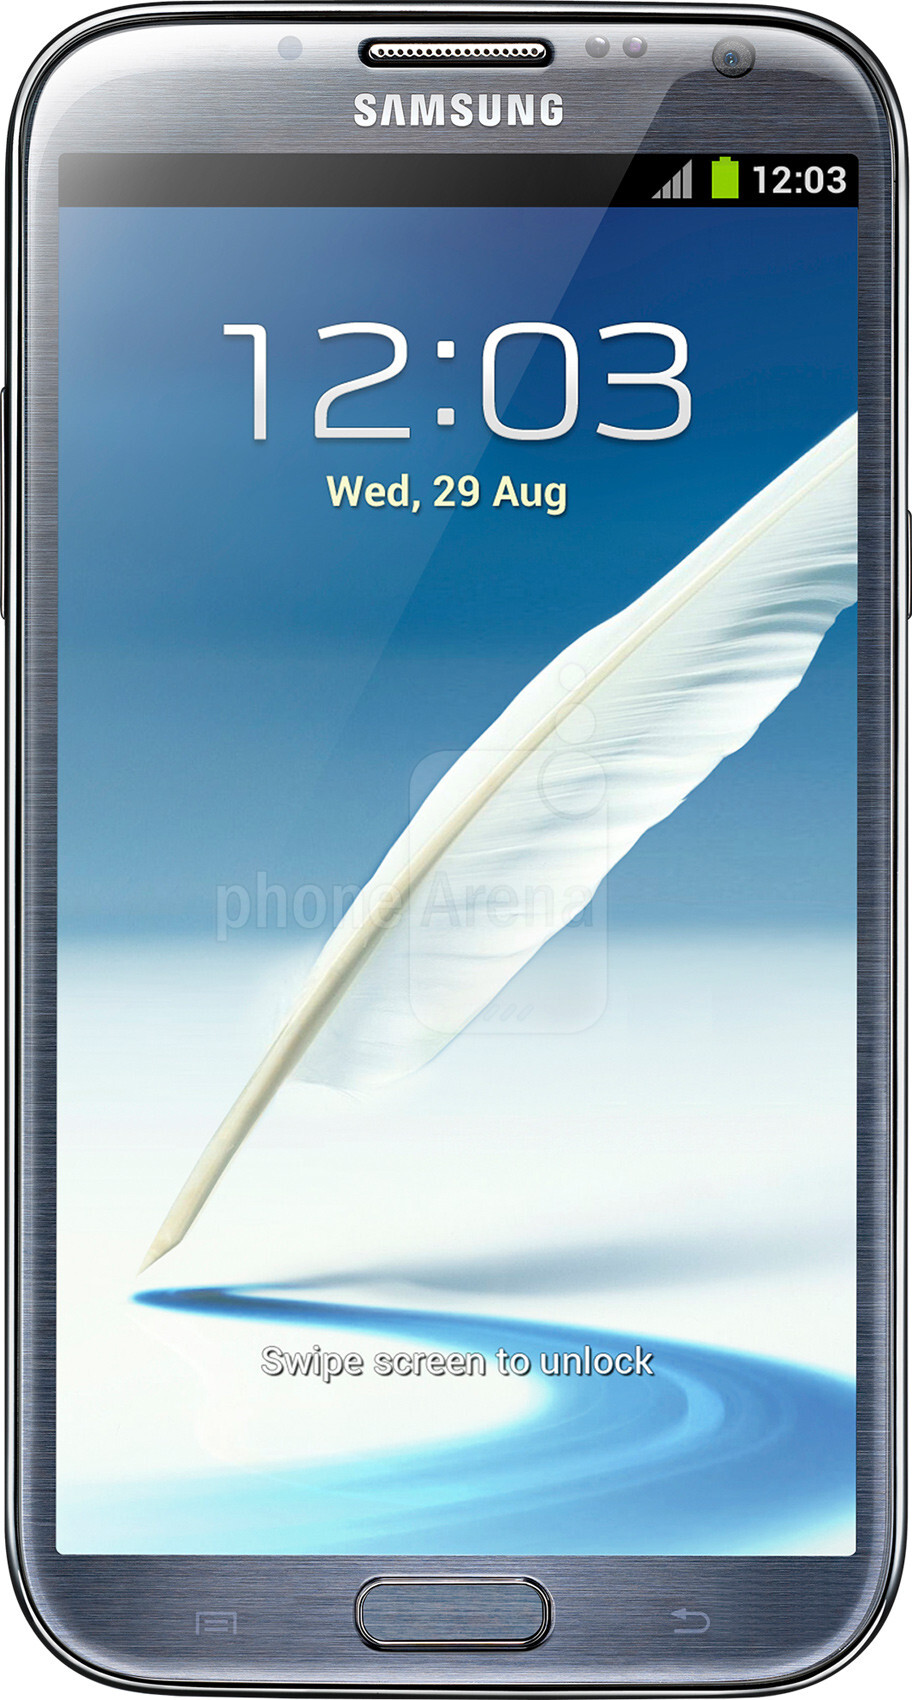 Samsung GALAXY Note II Verizon